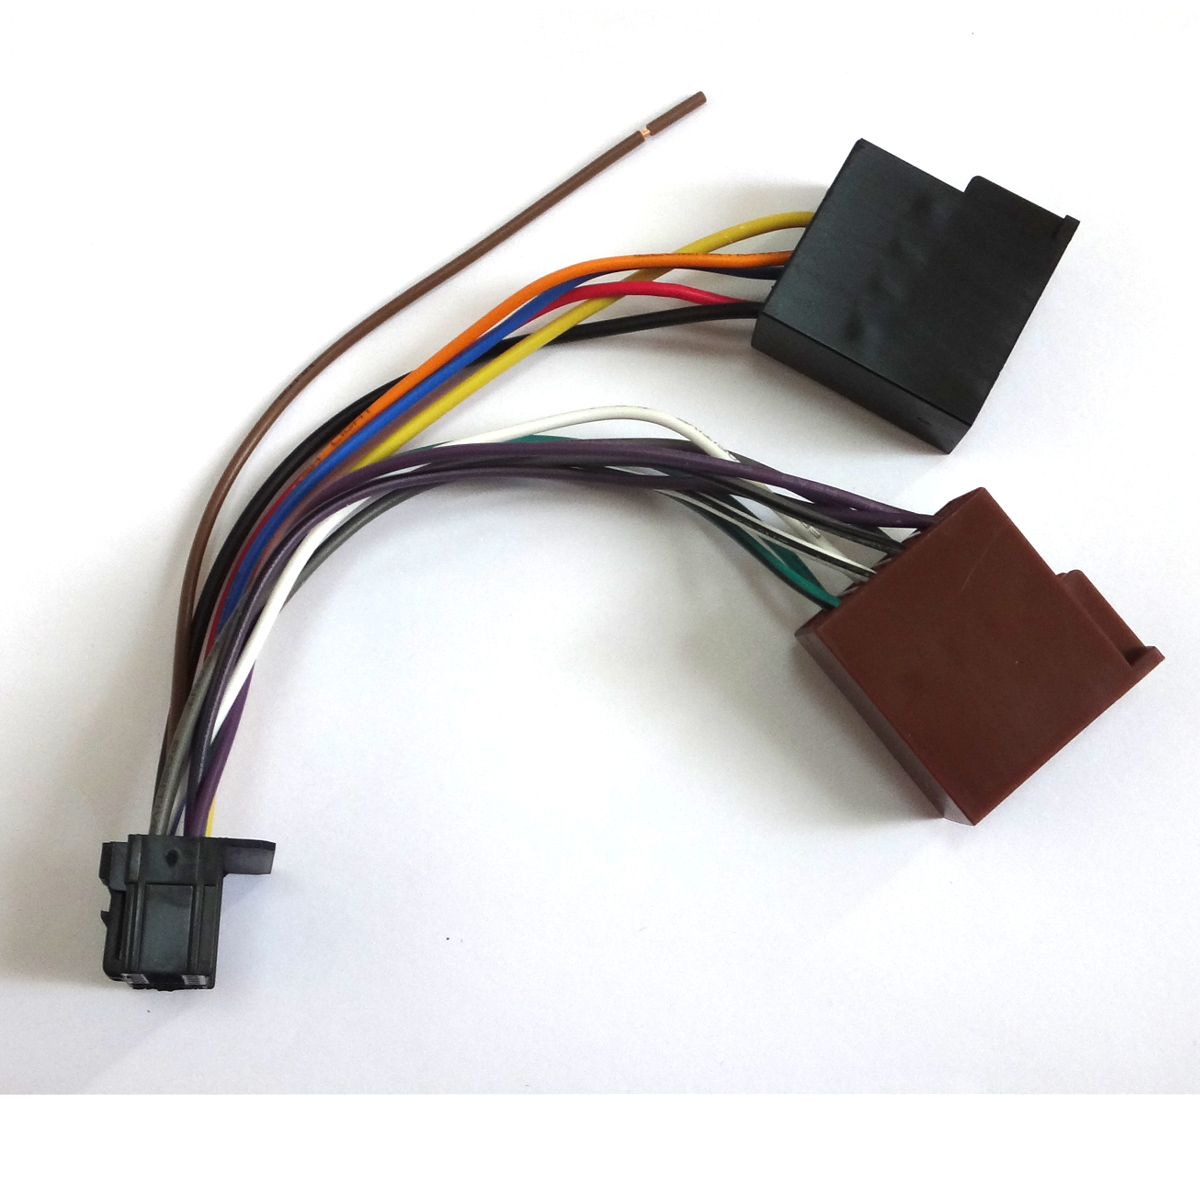 hight resolution of pioneer 4400bh 16 pin wiring harness free download wiring diagrams car stereo wiring colors pioneer 4400bh